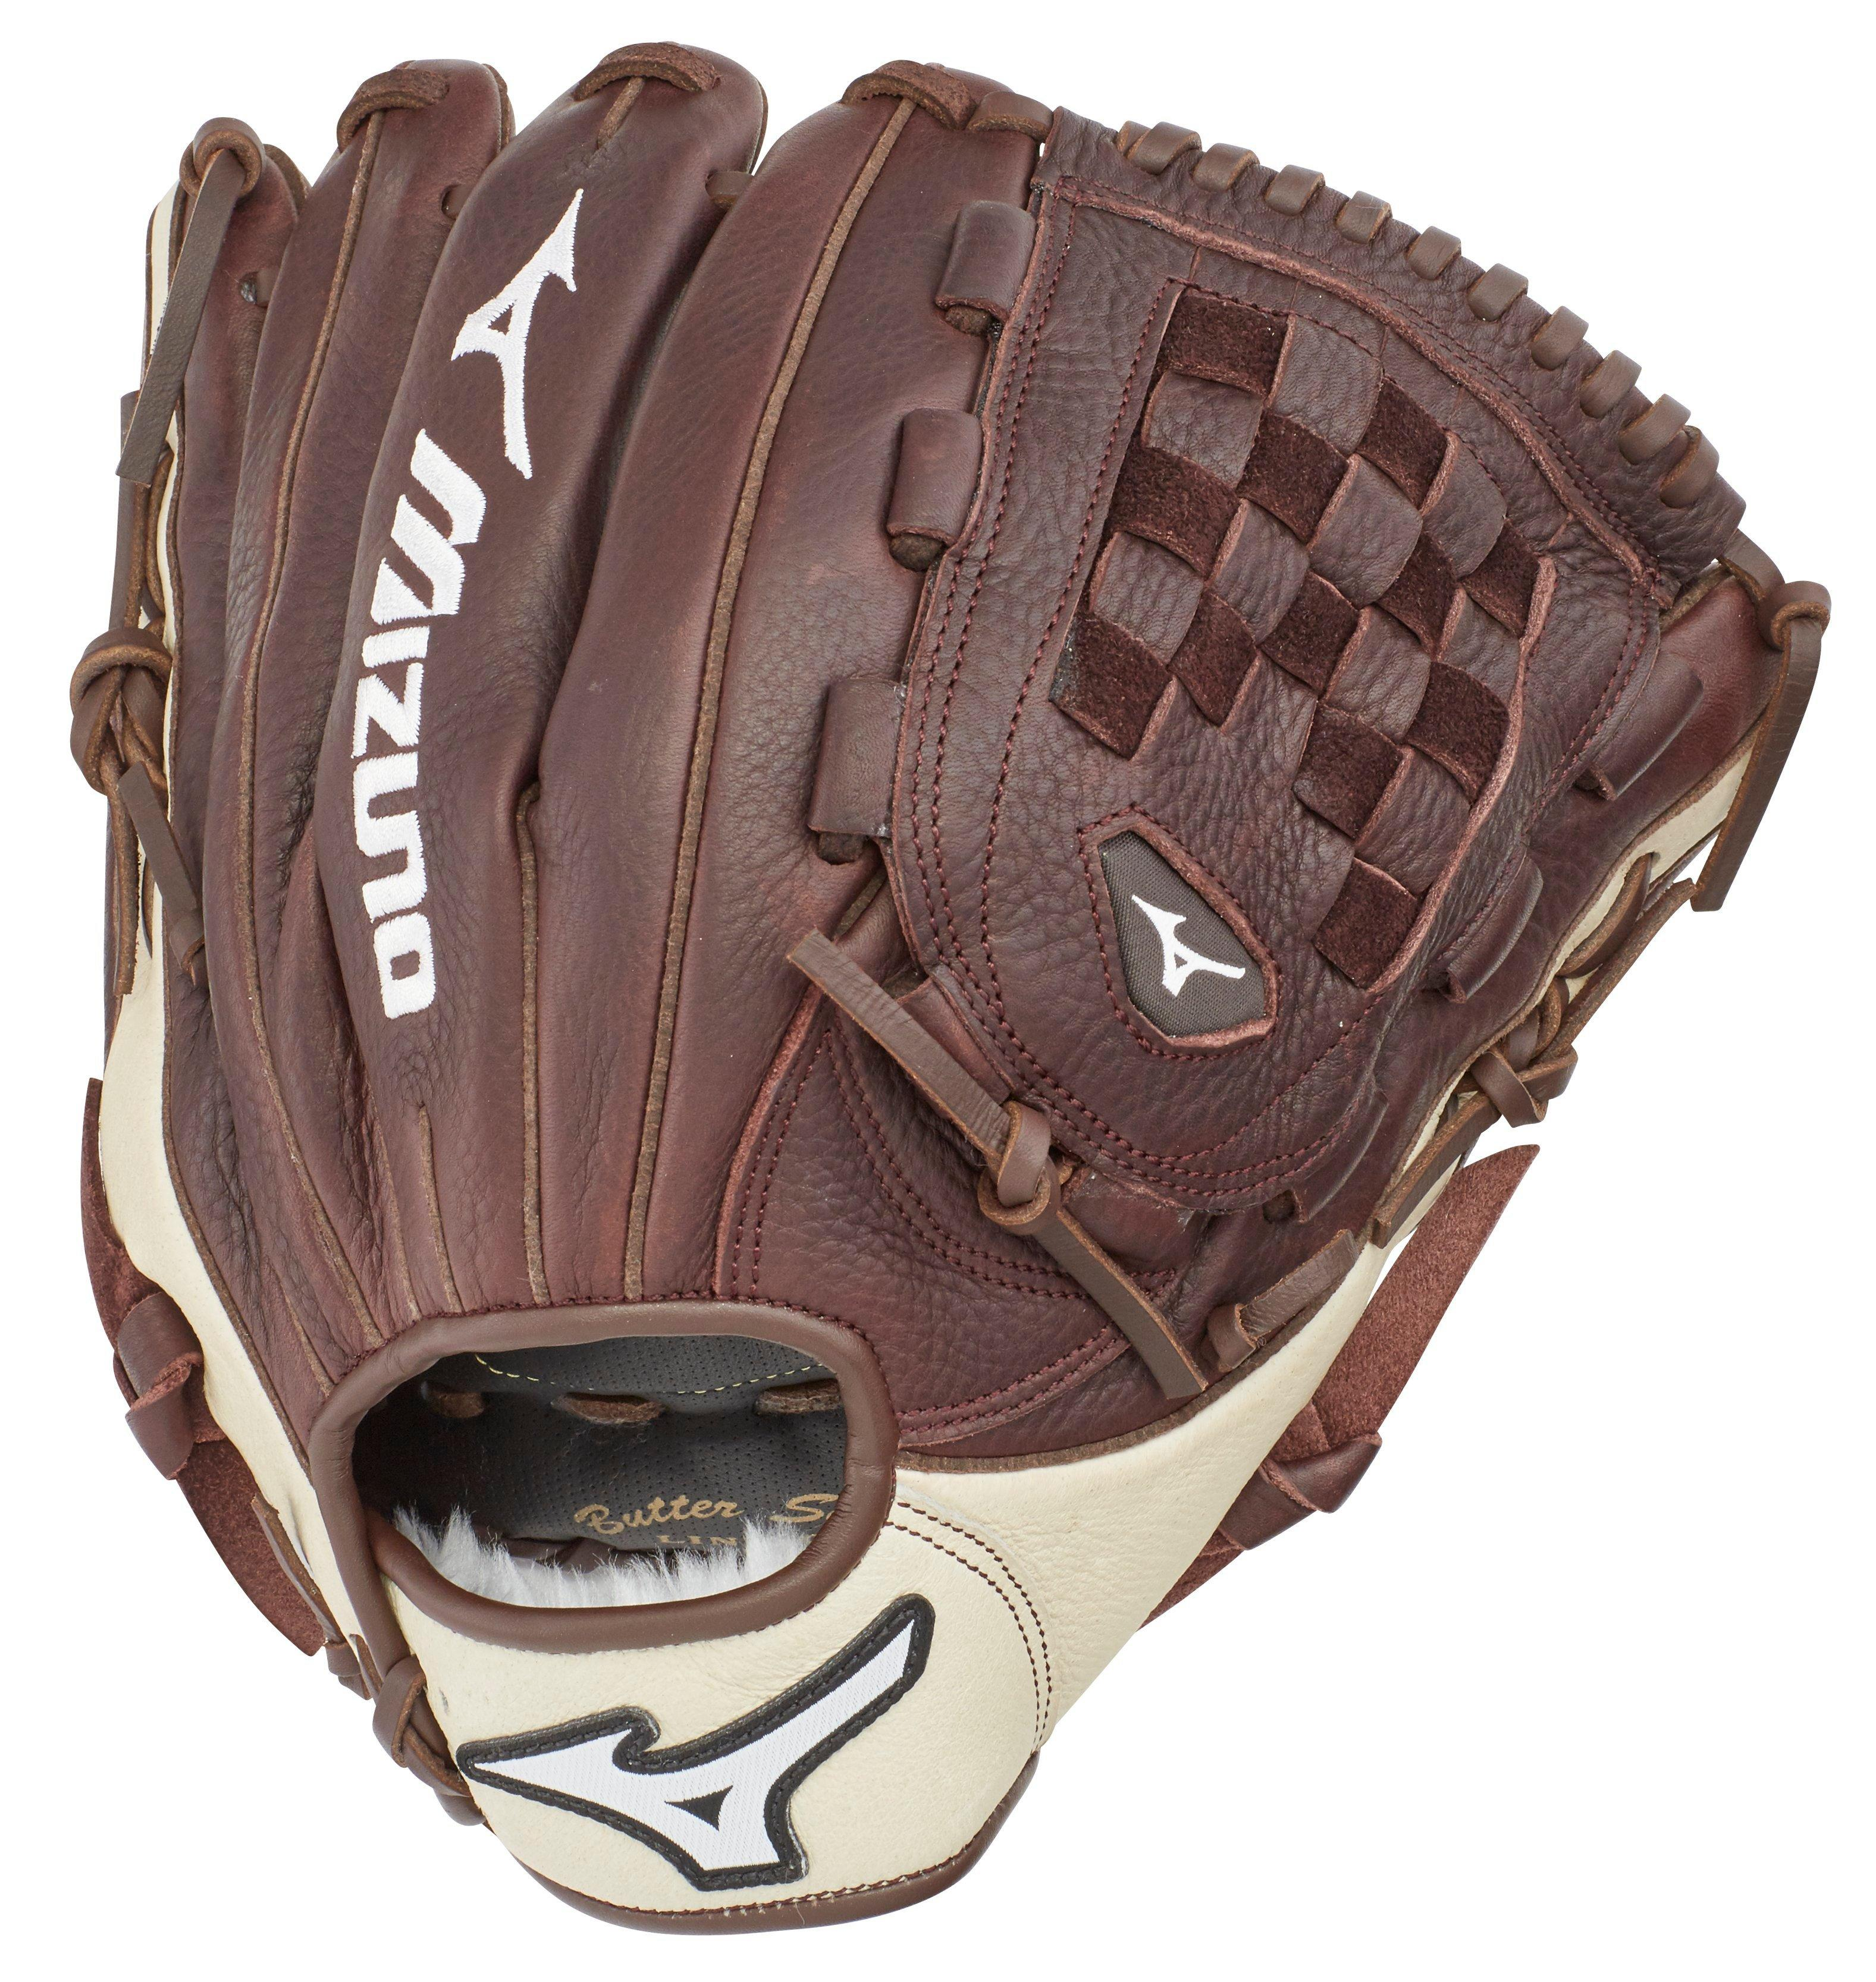 new style 8922d 9213f Mizuno Franchise Series Pitcher Outfield Baseball Glove 12